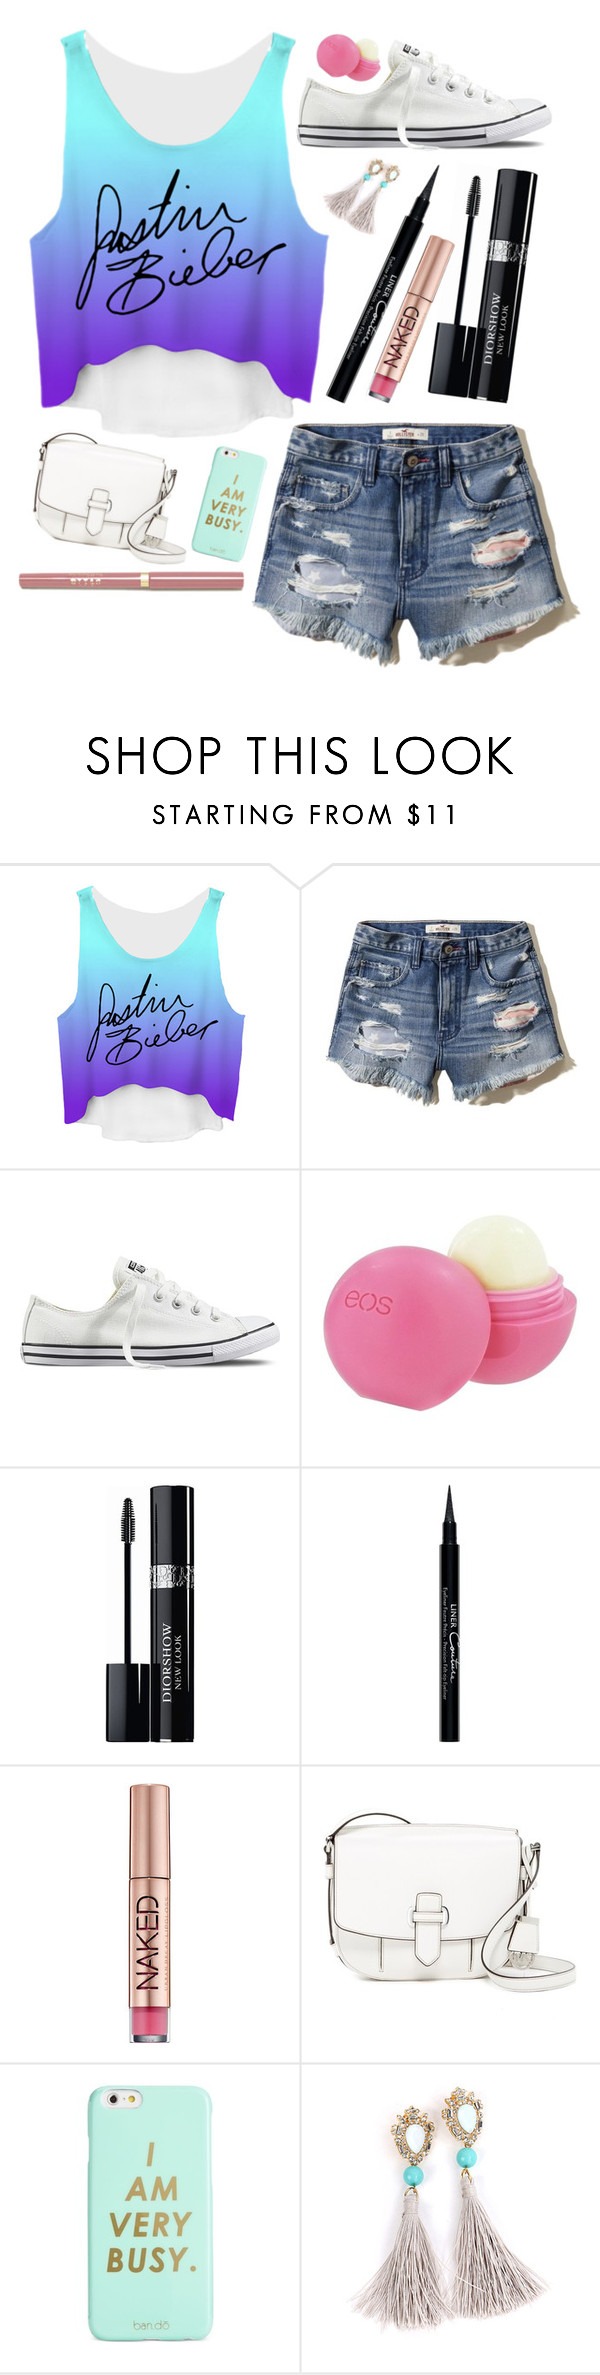 """""""I Am too Busy Belibering 😙"""" by barbiecar ❤ liked on Polyvore featuring Justin Bieber, Hollister Co., Converse, Eos, Christian Dior, Givenchy, Urban Decay, MICHAEL Michael Kors and ban.do"""